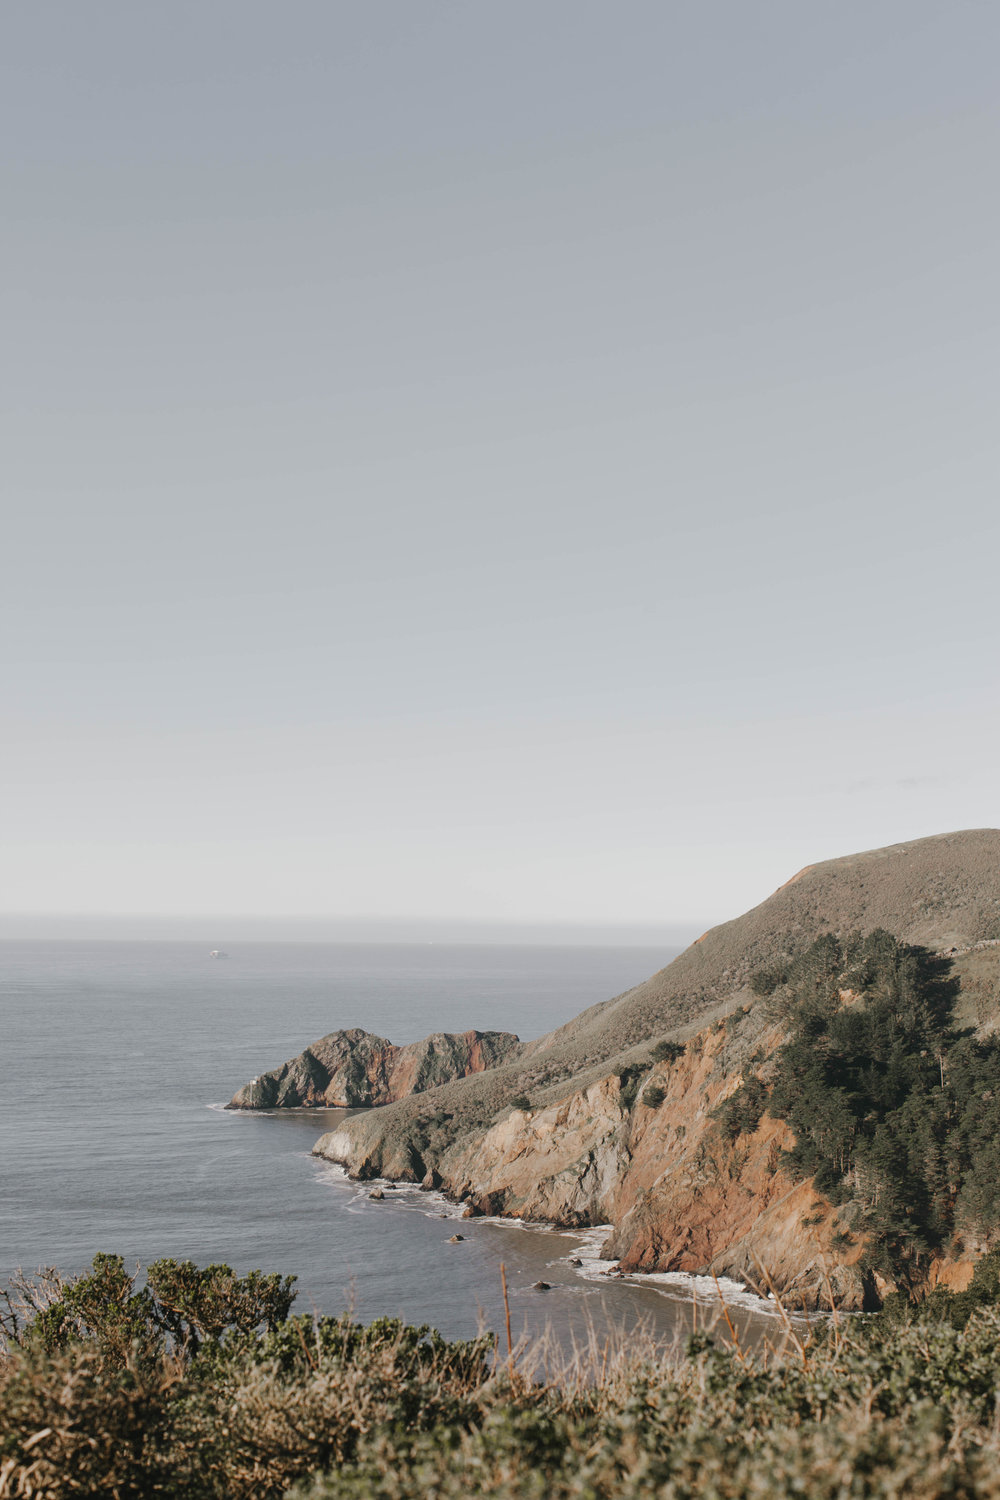 California & God's Faithfulness - I lived in California last year, I've shared just how beautiful and exciting it was for me, but I don't think I've talked to many people about what this time showed me. What it means to me…